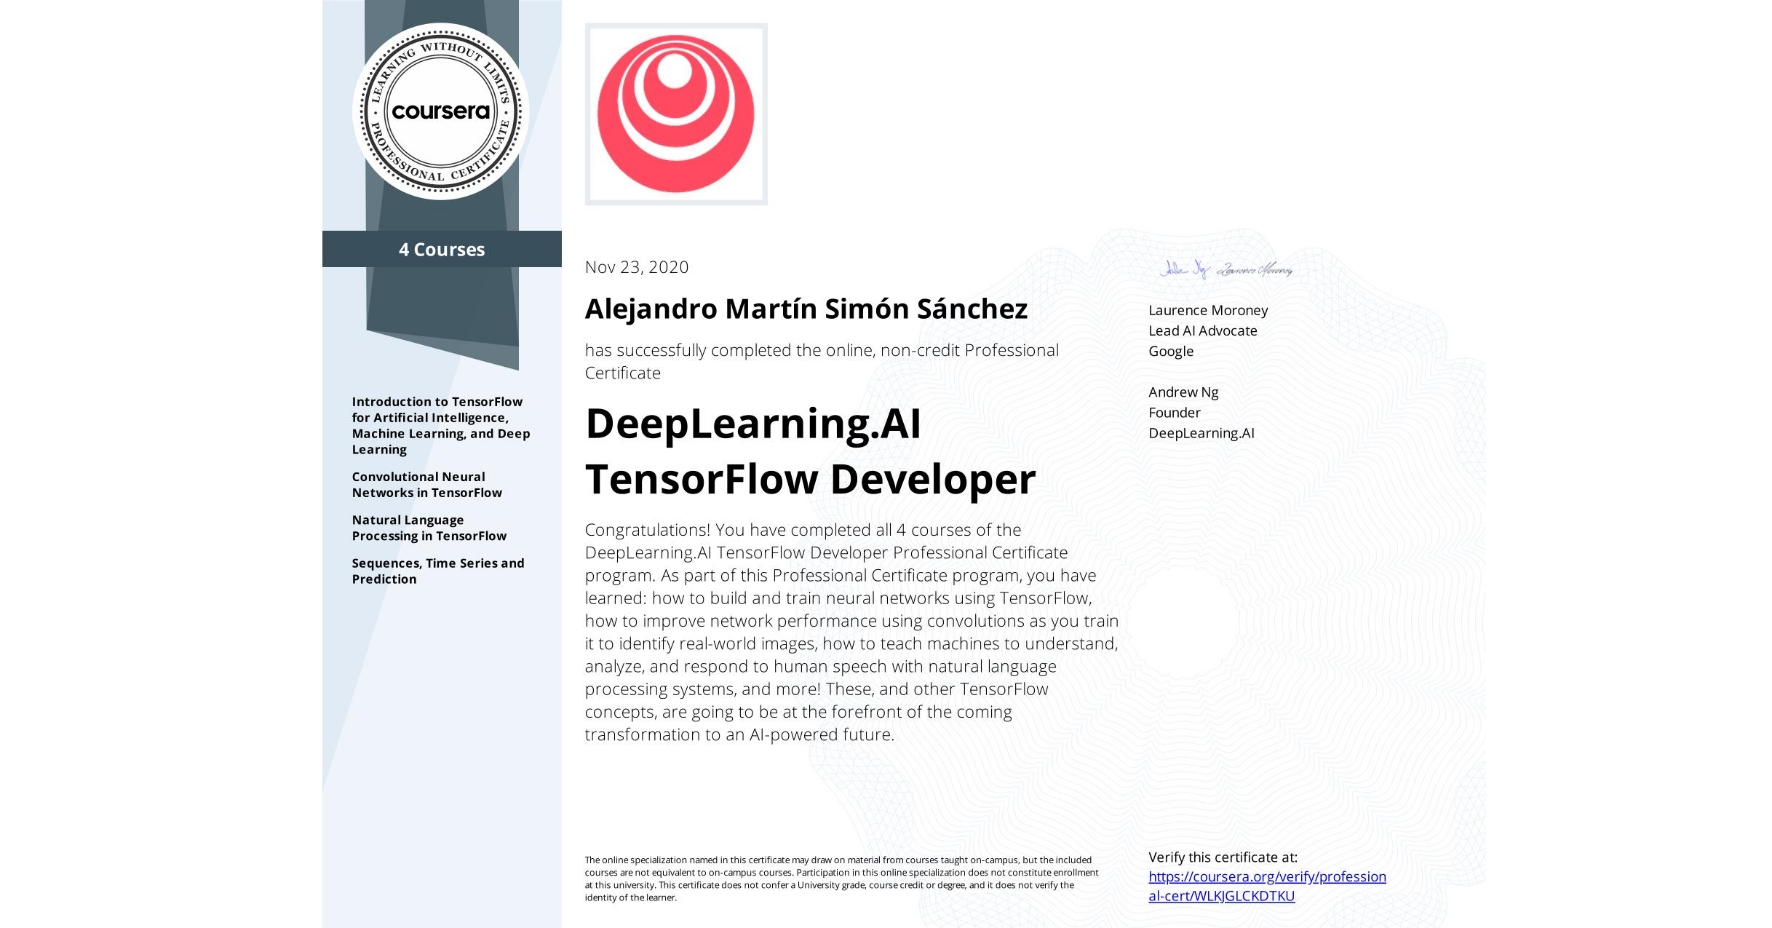 View certificate for Alejandro Martín  Simón Sánchez, DeepLearning.AI TensorFlow Developer, offered through Coursera. Congratulations! You have completed all 4 courses of the DeepLearning.AI TensorFlow Developer Professional Certificate program.   As part of this Professional Certificate program, you have learned: how to build and train neural networks using TensorFlow, how to improve network performance using convolutions as you train it to identify real-world images, how to teach machines to understand, analyze, and respond to human speech with natural language processing systems, and more!  These, and other TensorFlow concepts, are going to be at the forefront of the coming transformation to an AI-powered future.